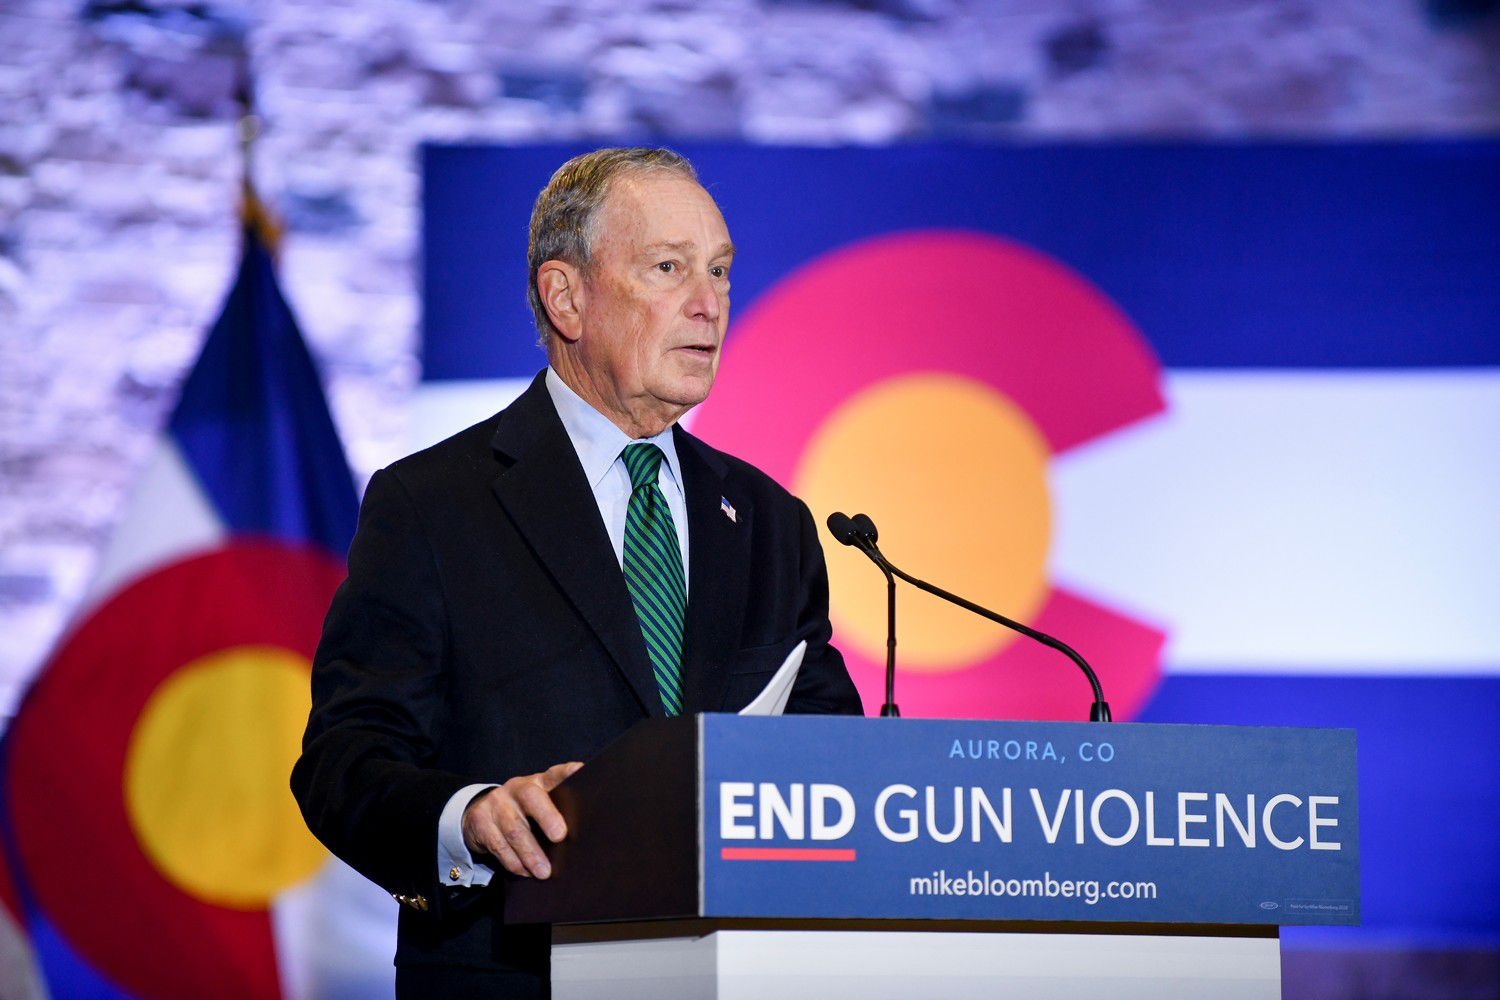 Biography of Michael Bloomberg, American Businessman and Politician